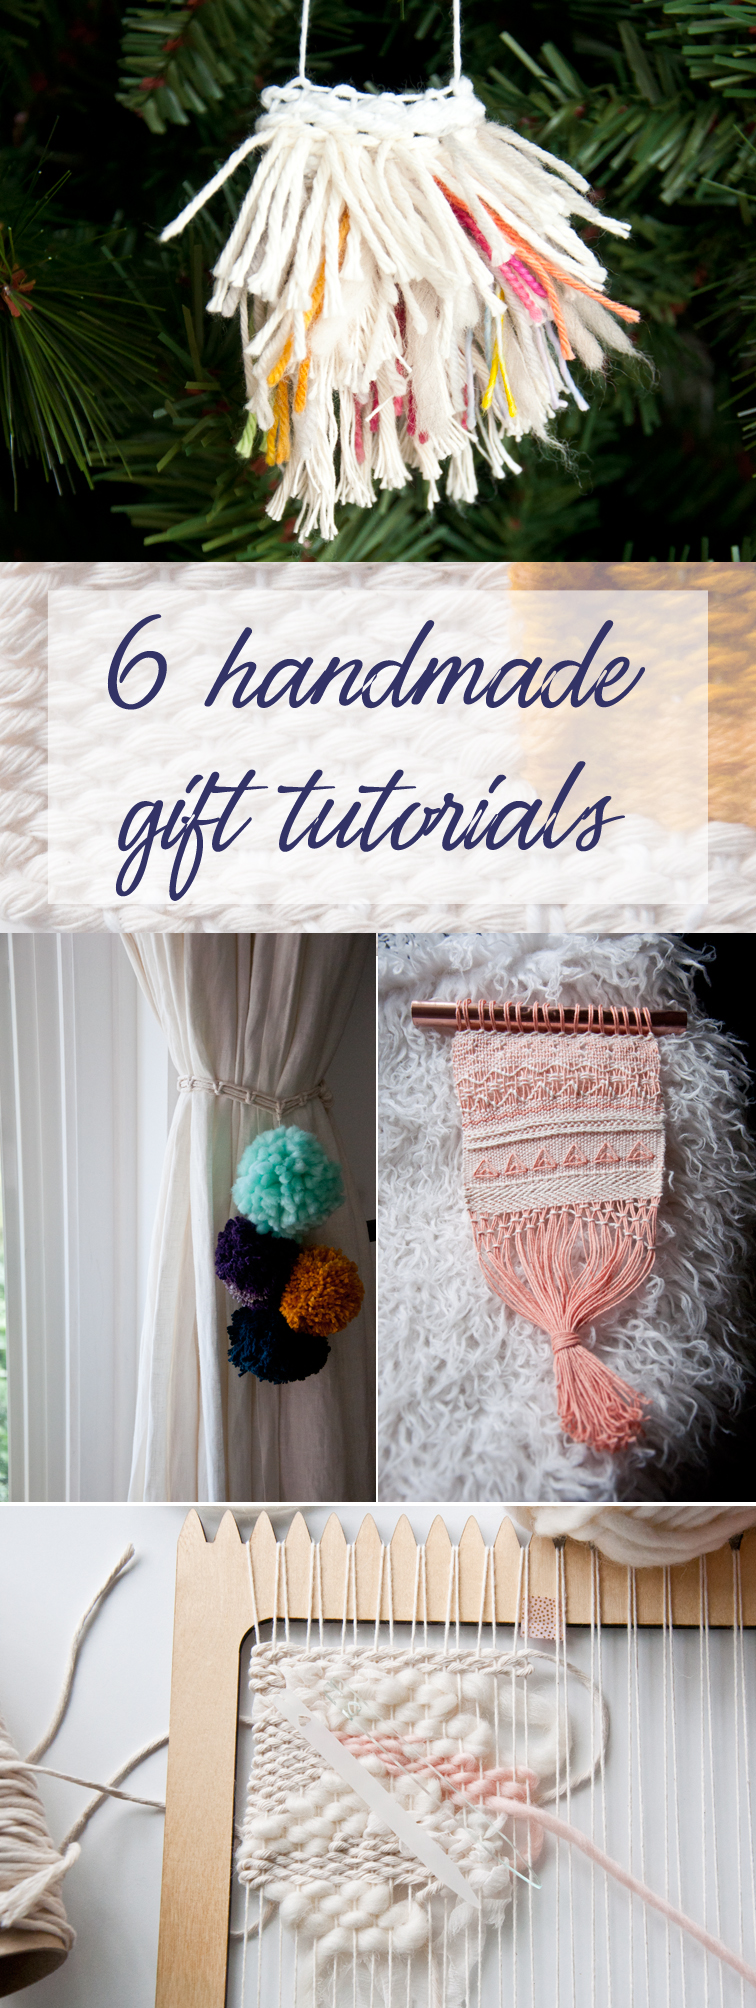 6 handmade gift tutorials. I can't wait to make one of these!